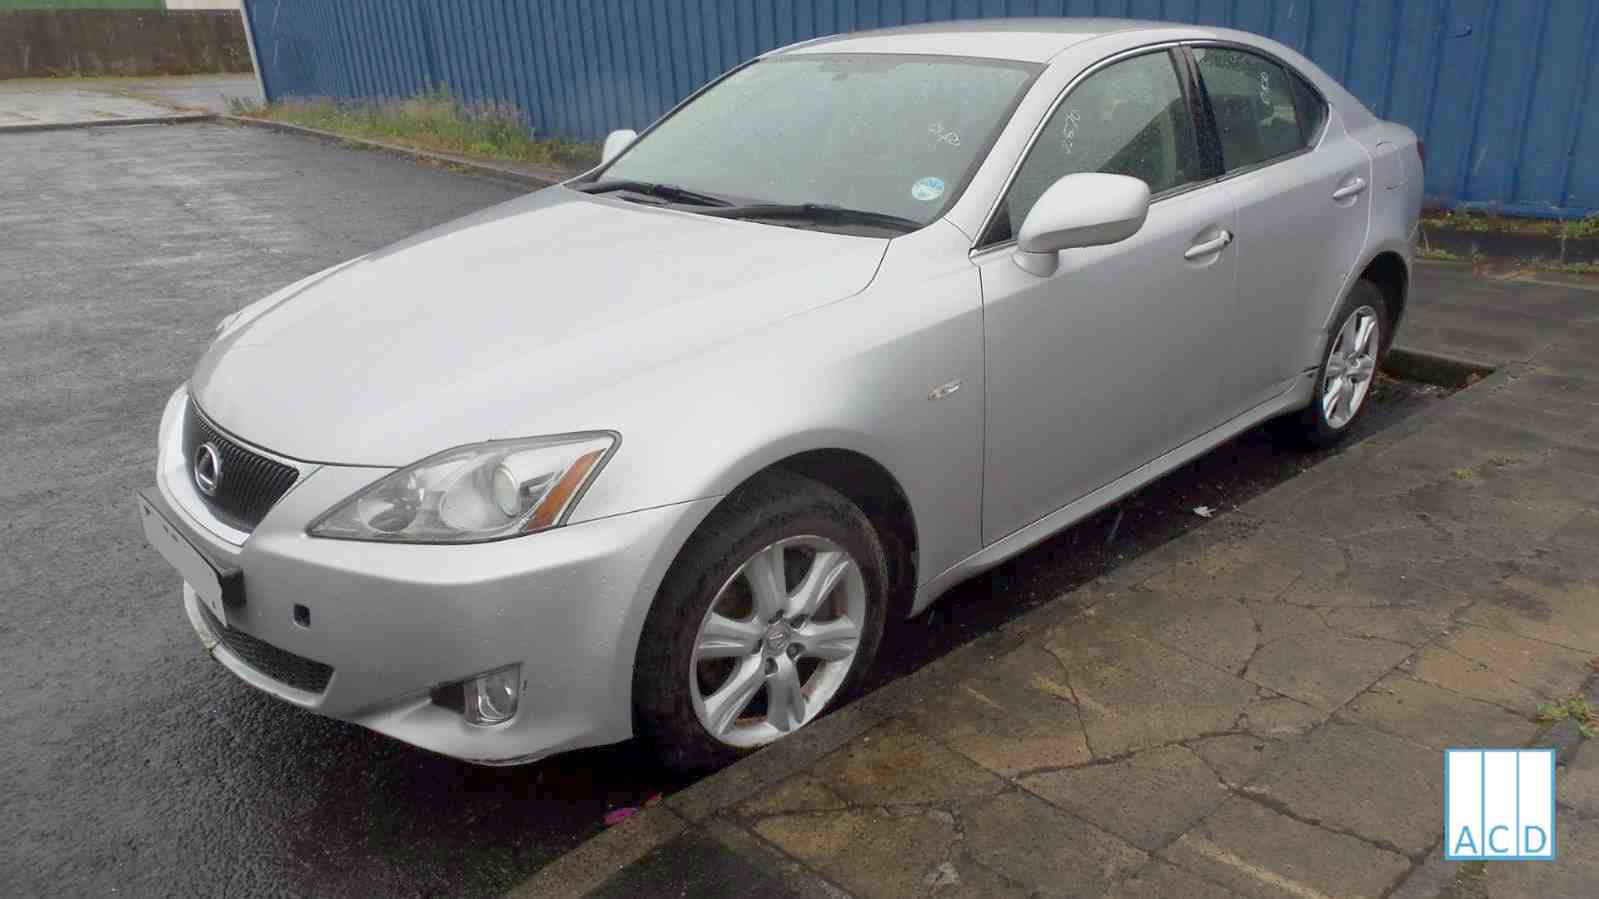 Lexus IS220D 2.2L Diesel 6-Speed manual 2006 #2870 01